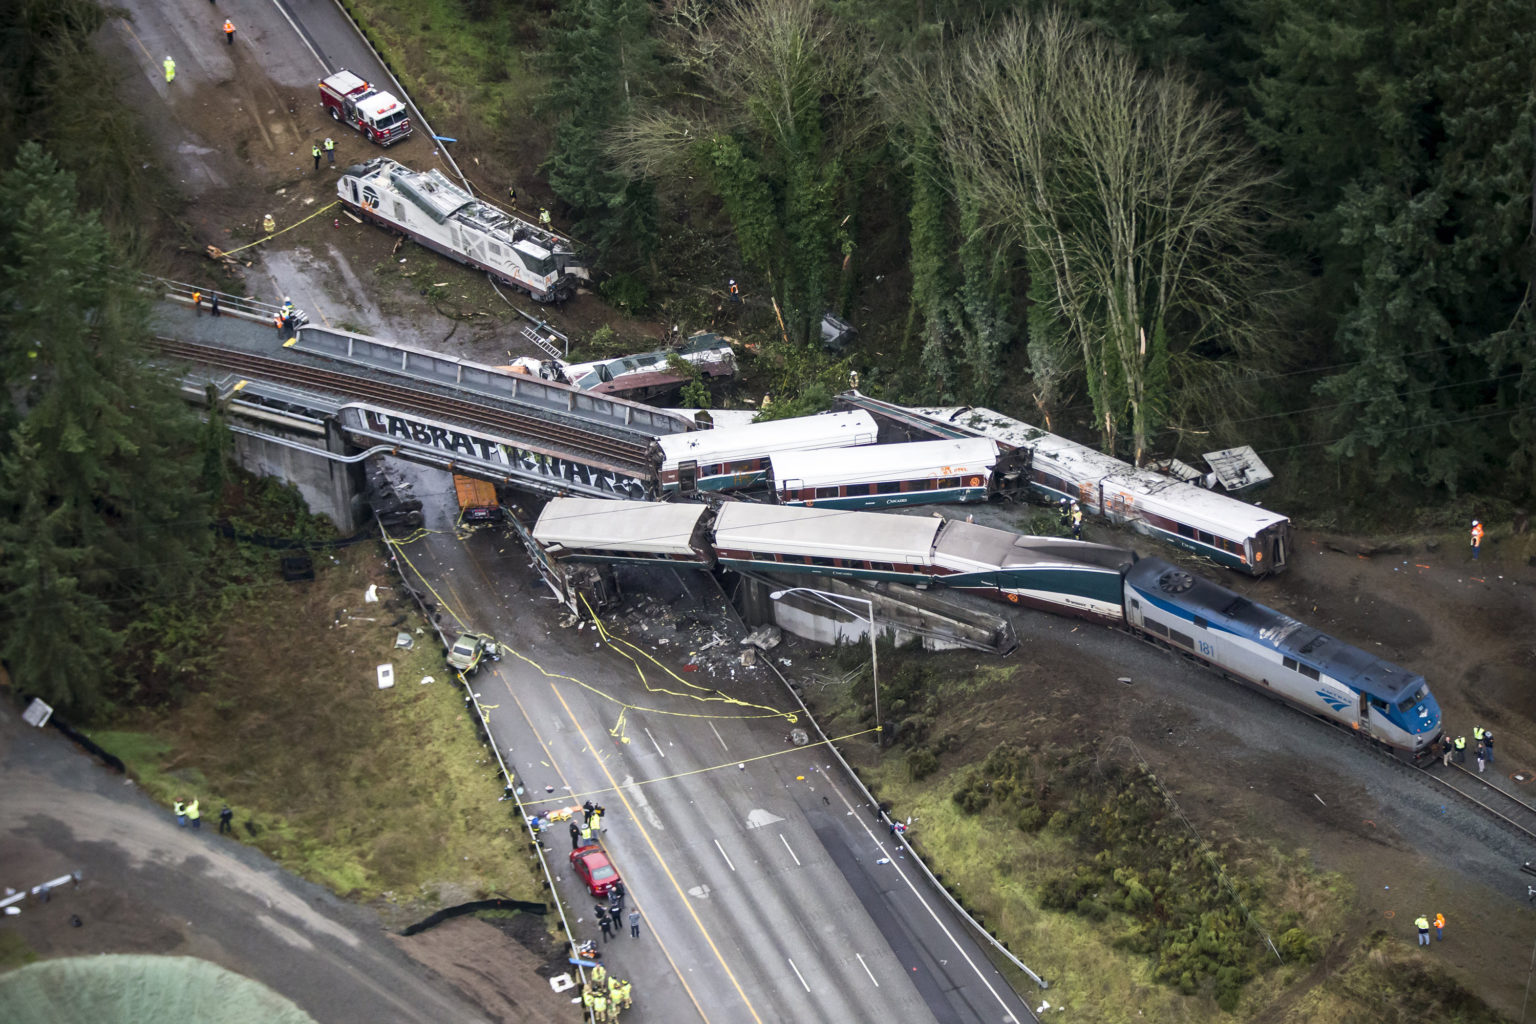 An Amtrak train derailed and fell off of a bridge and onto Interstate 5 near Mounts Road between Lakewood and Olympia, Wash. on Monday, Dec. 18, 2017. (Bettina Hansen/Seattle Times/TNS)